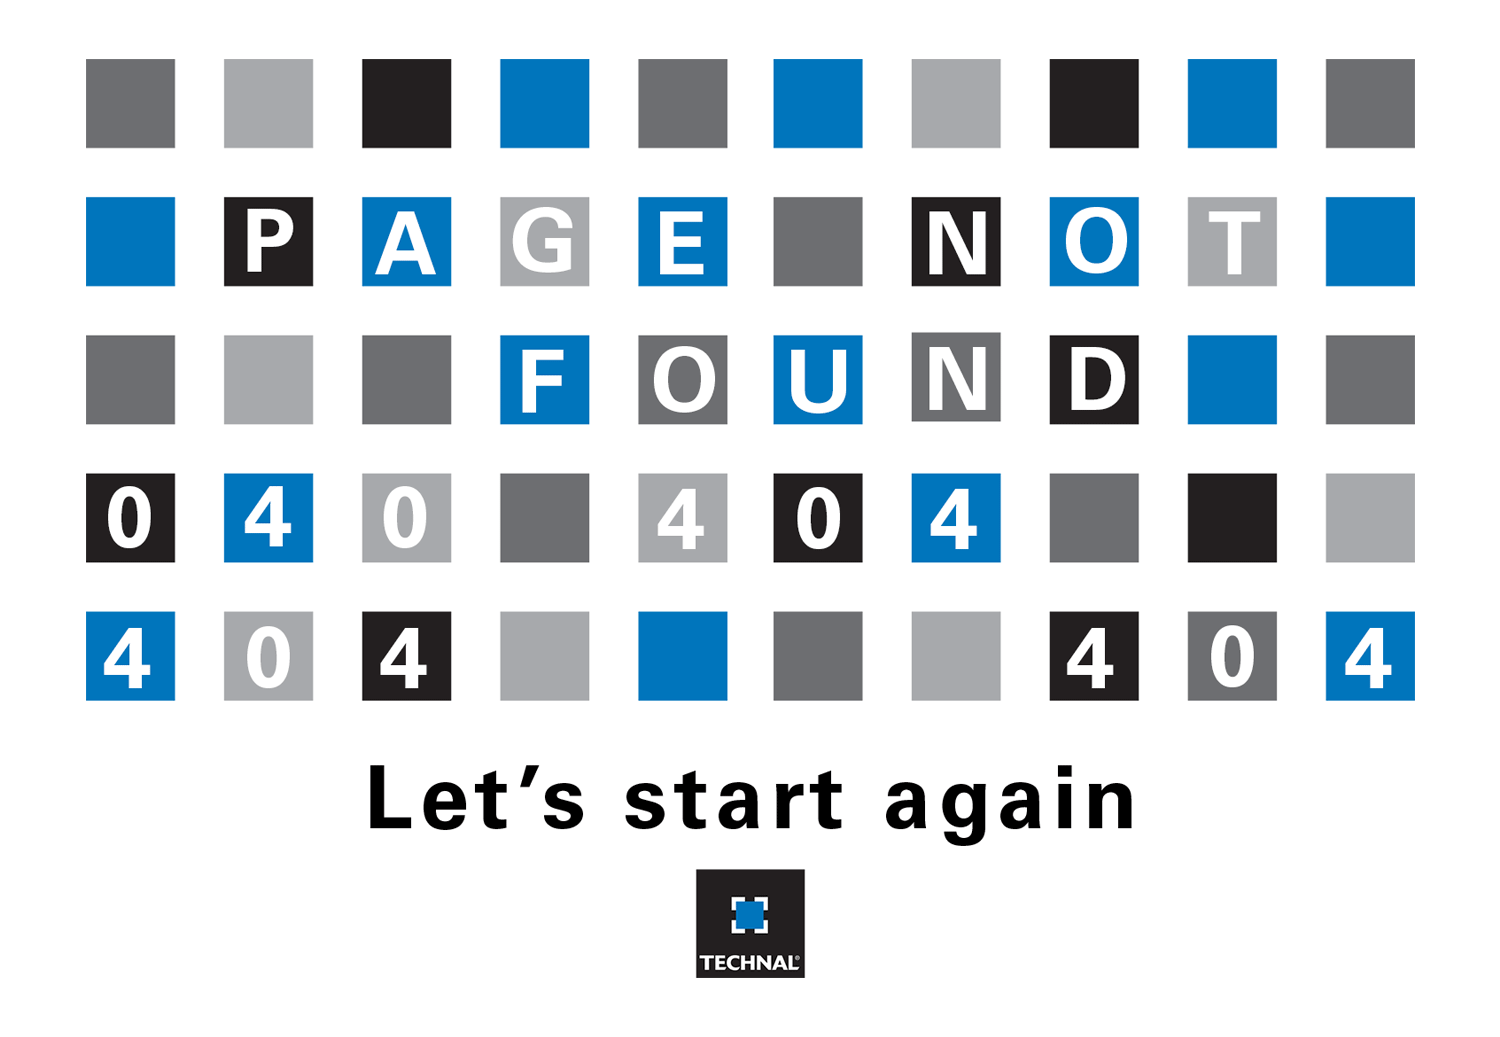 Page not found let's start again